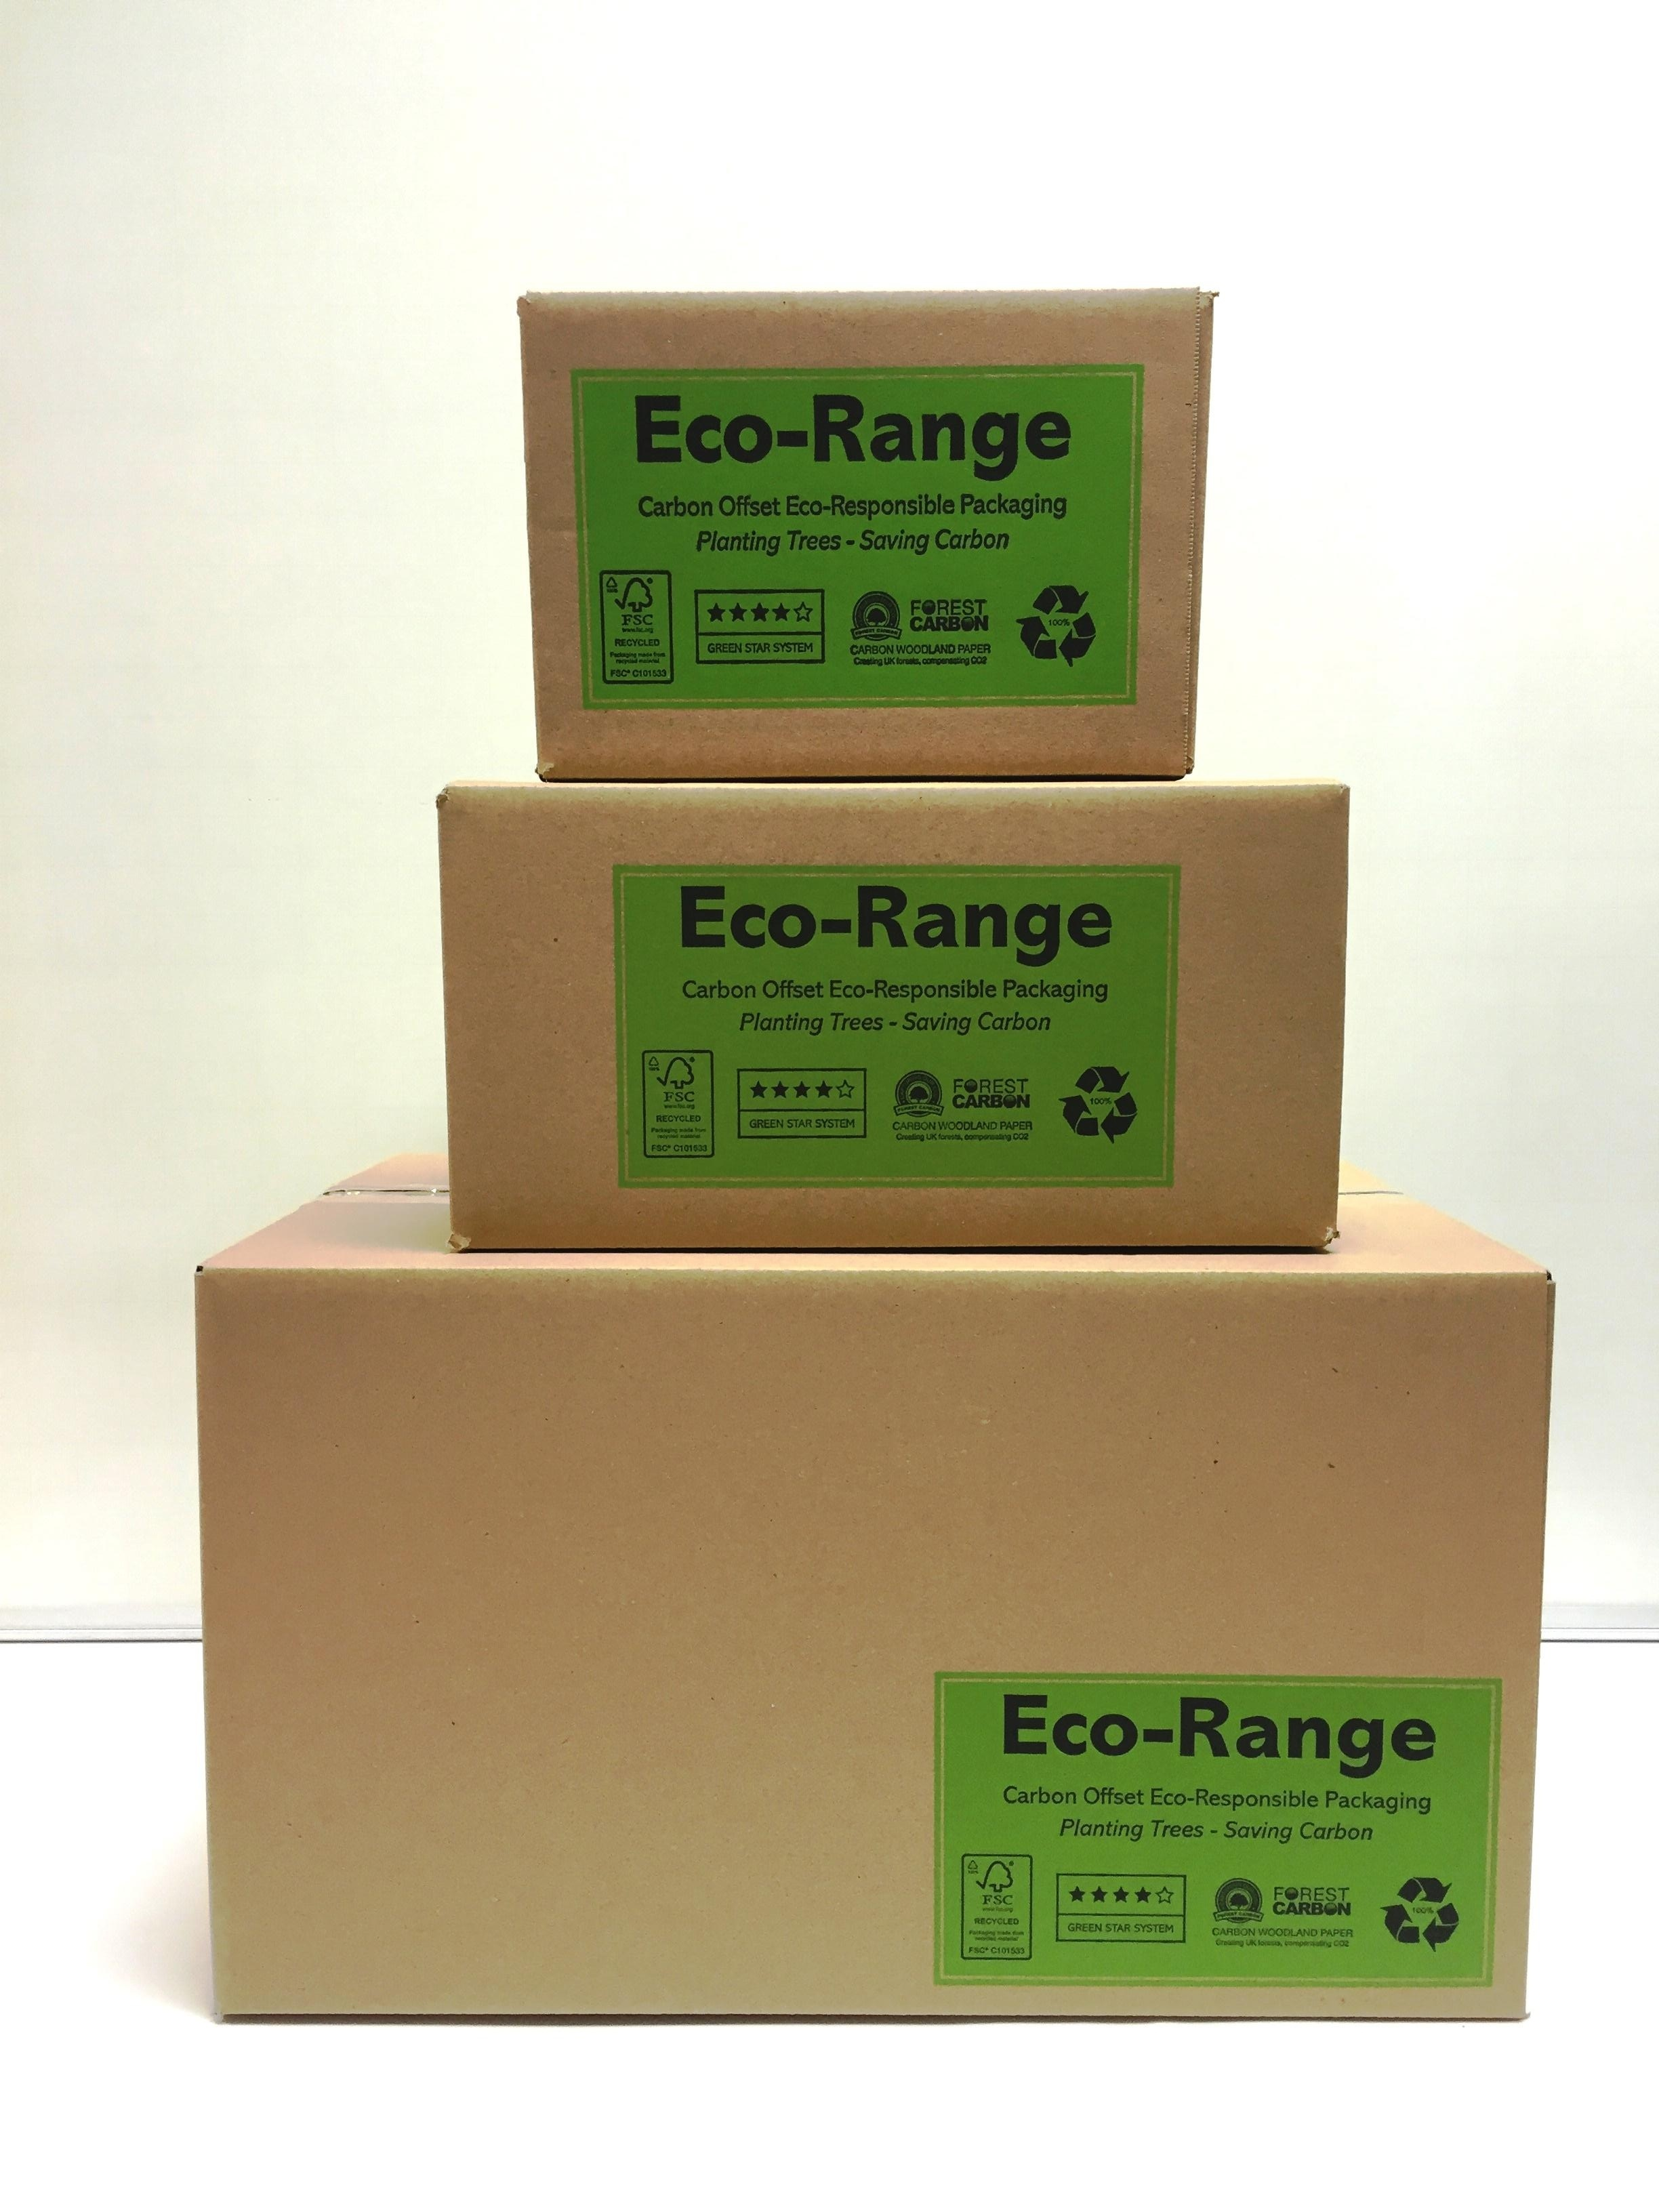 exclusive eco-range offers carbon neutral packaging